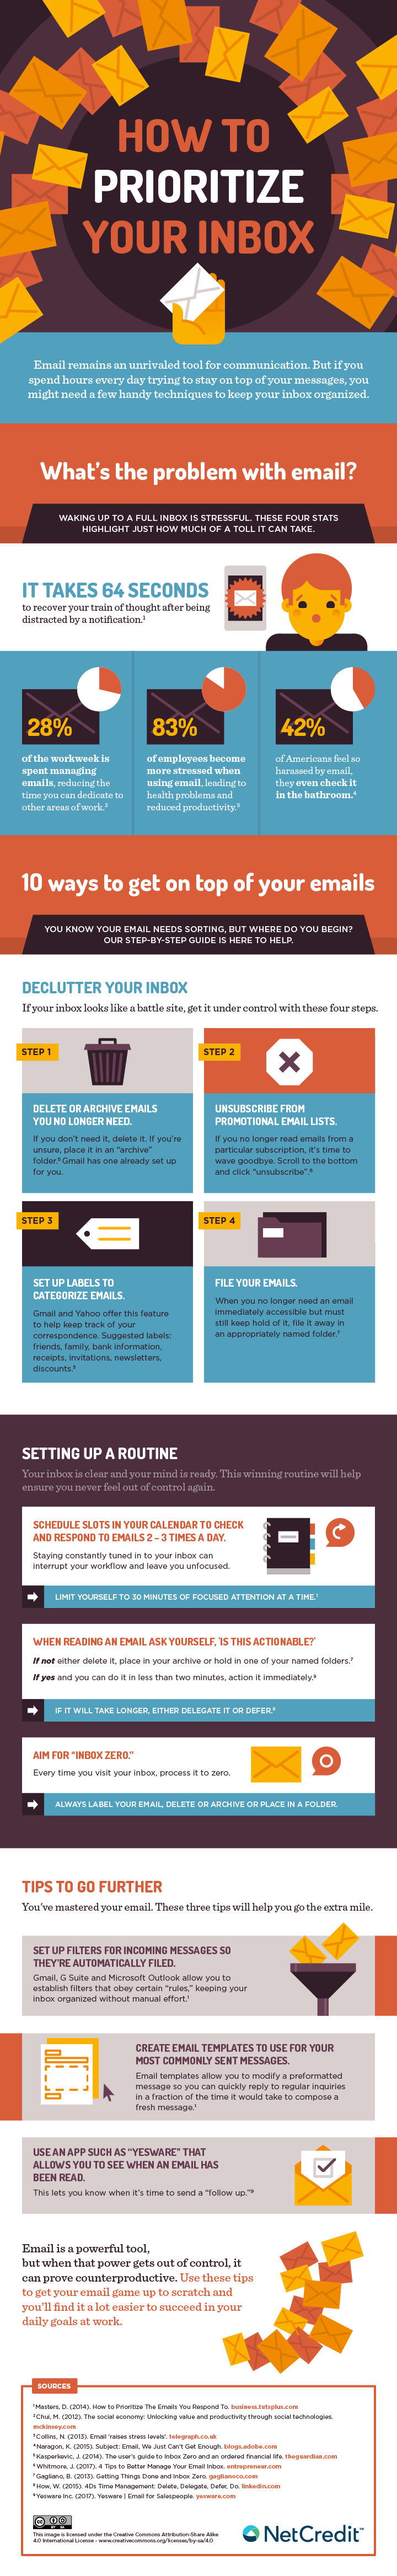 ToolsHero infographic how to prioritize your inbox